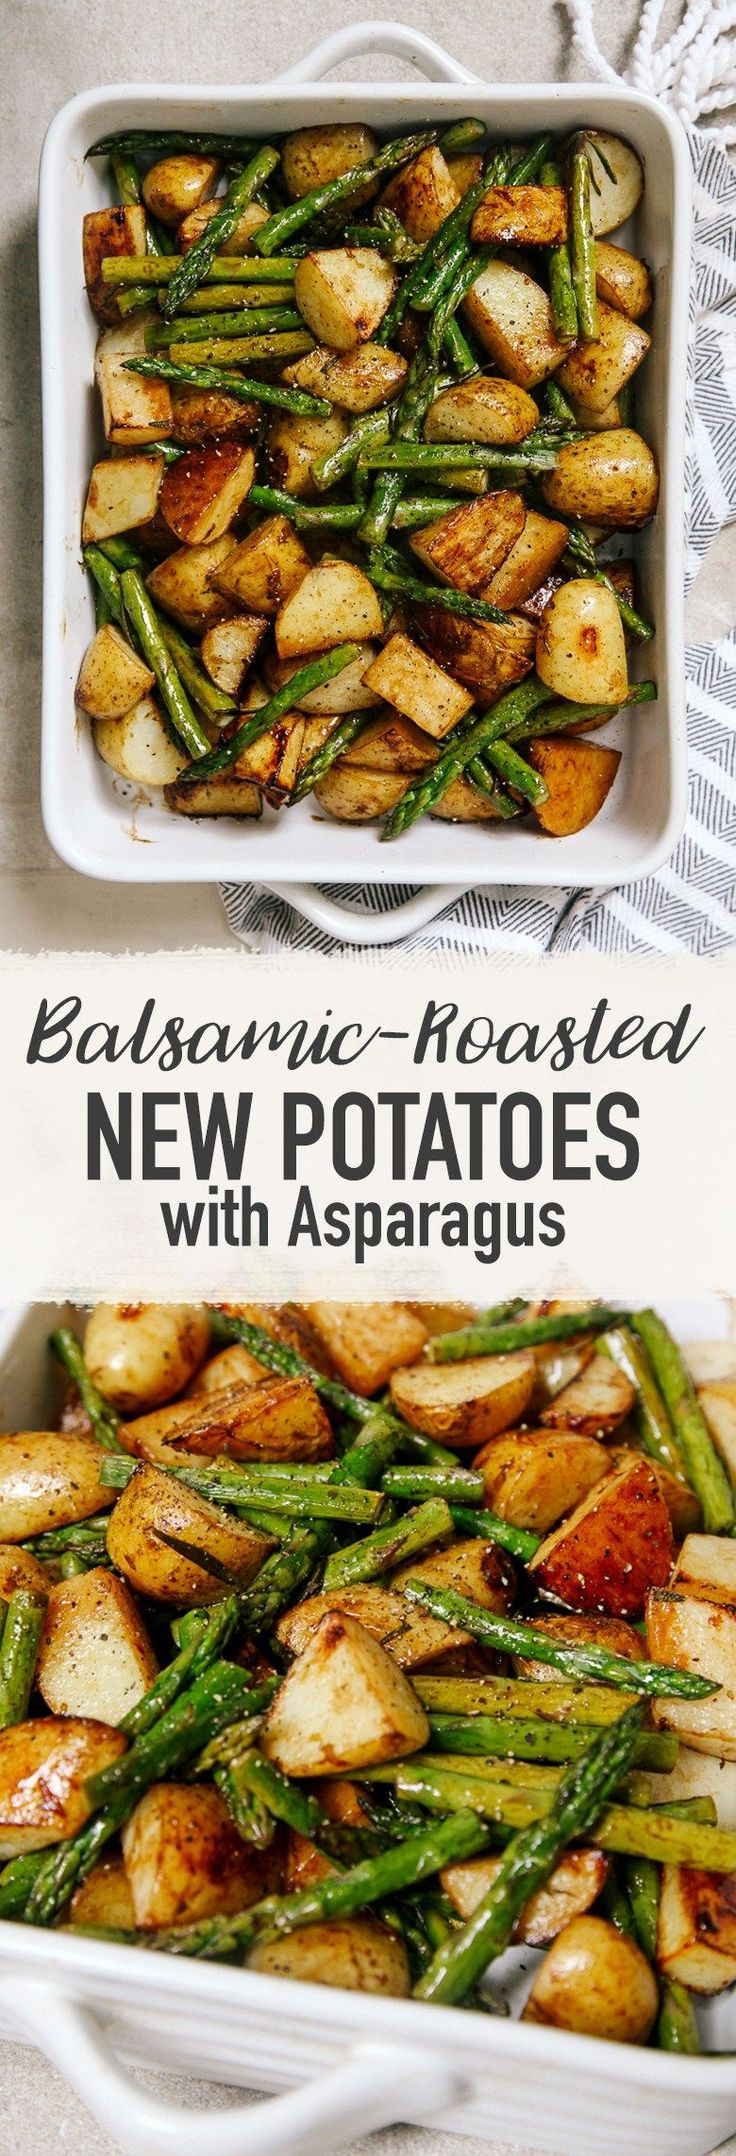 Balsamic Roasted New Potatoes with Asparagus (Vegan Diet)